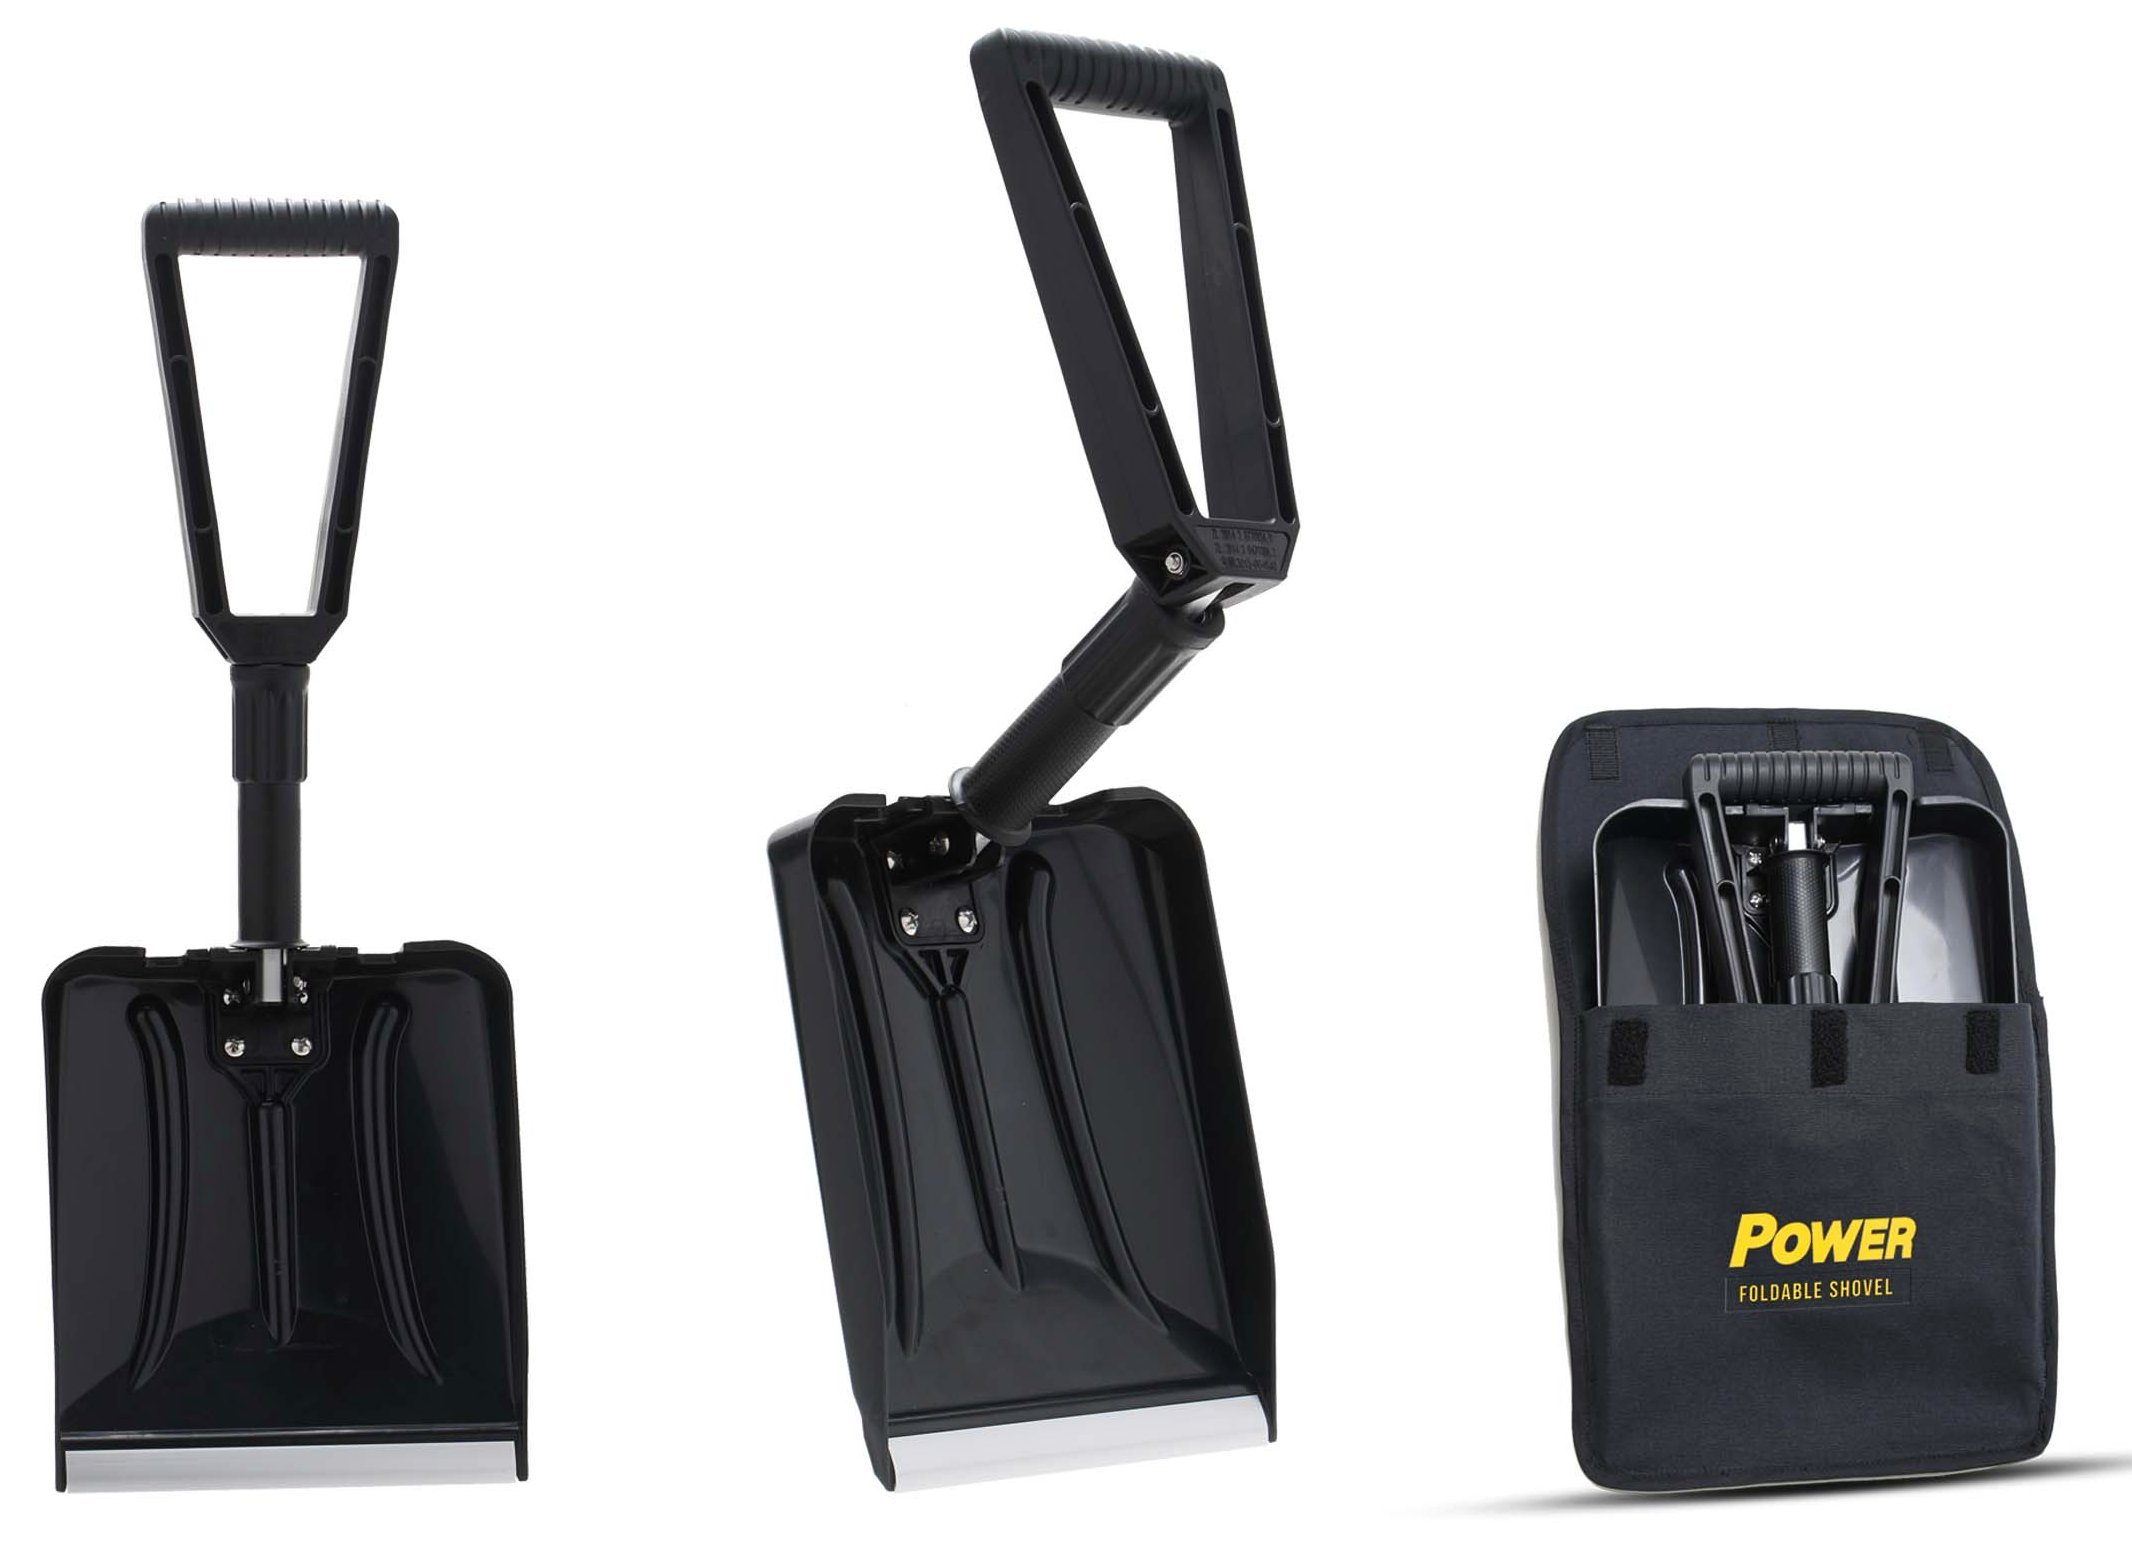 Power Foldable Shovel - Completely Collapsible Form 26'' Overall Length 12.5'' Compact Length (Black Color) by Power Products USA